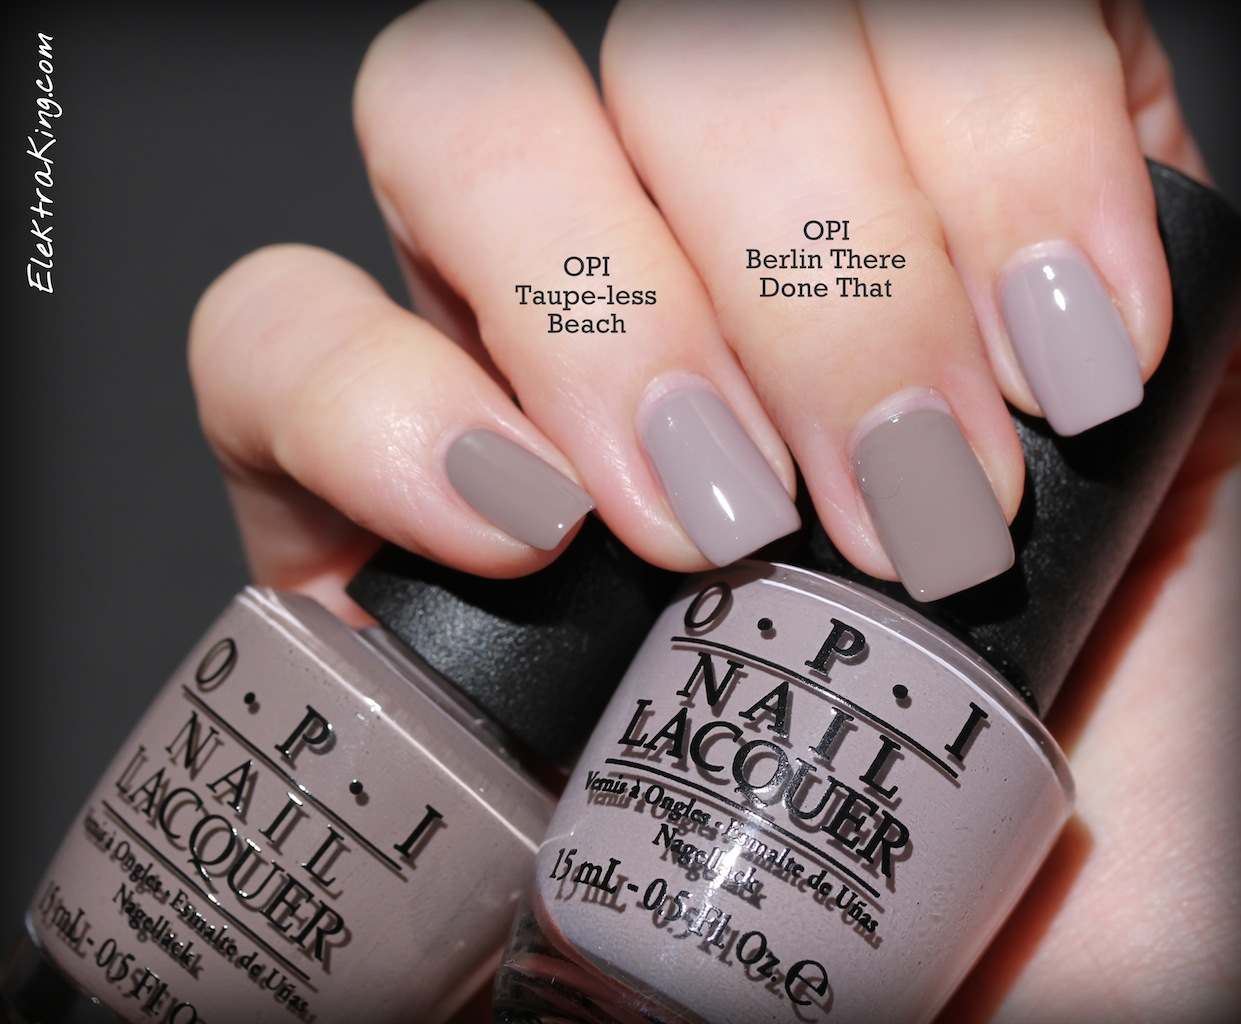 OPI Taupe-less Beach vs OPI Berlin There Done That ...